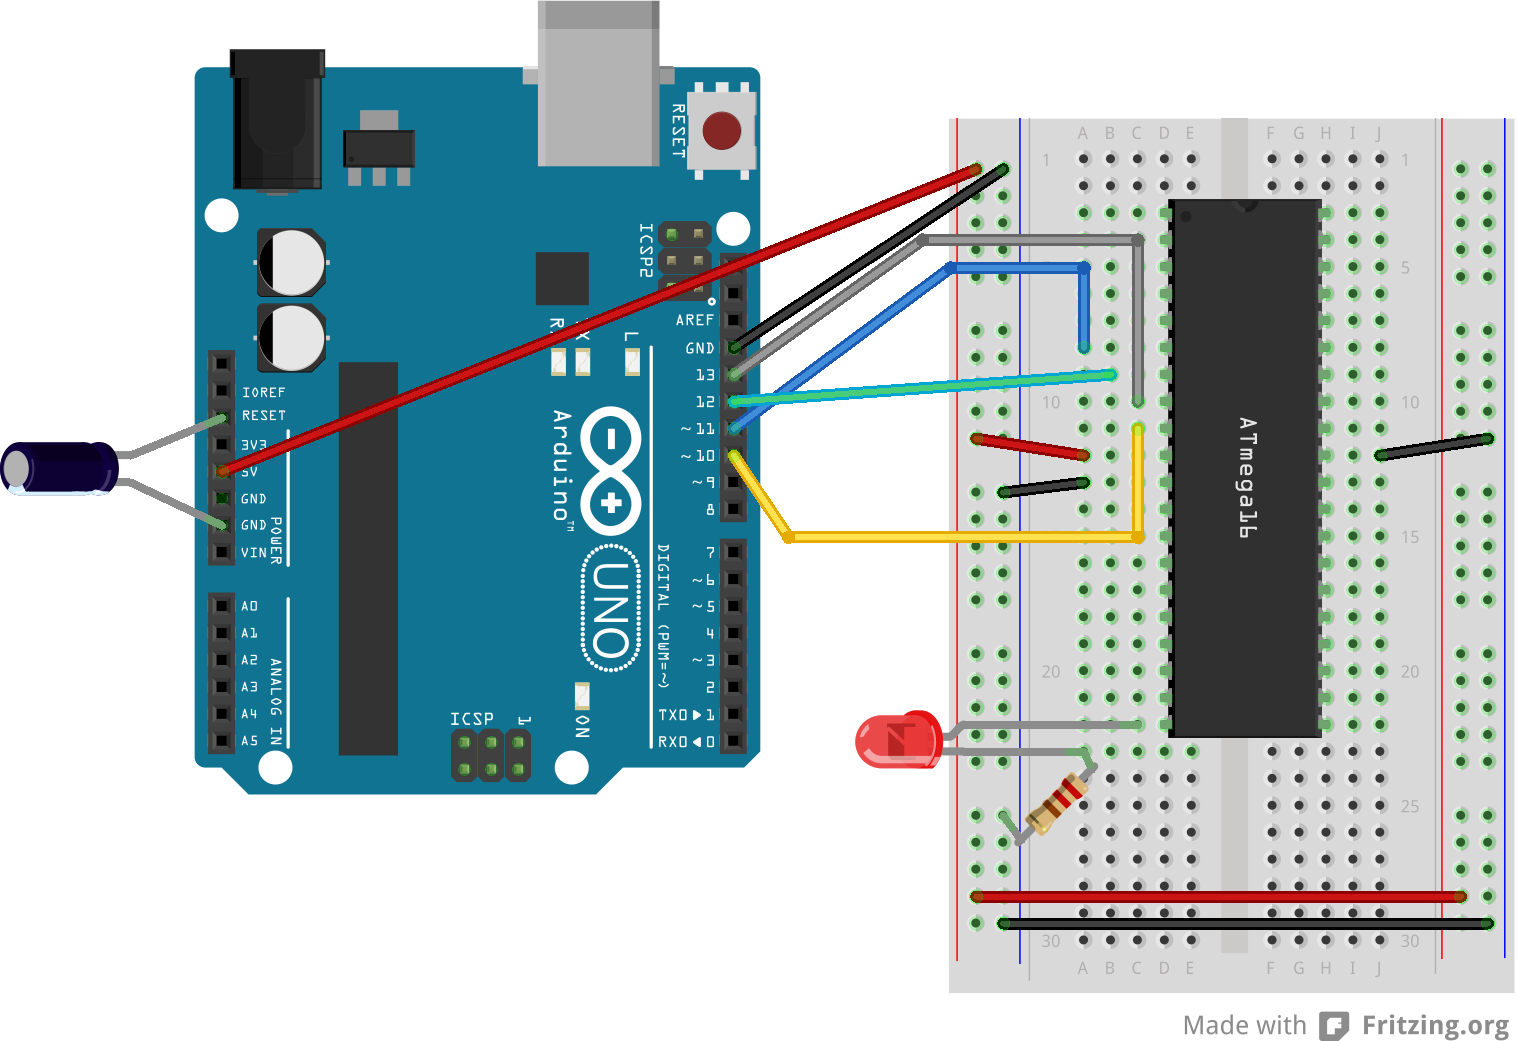 Use Arduino As An Isp Programmer To Program Non Avr Software Provides Environment Test Our Microcontroller Atmega 16 Using